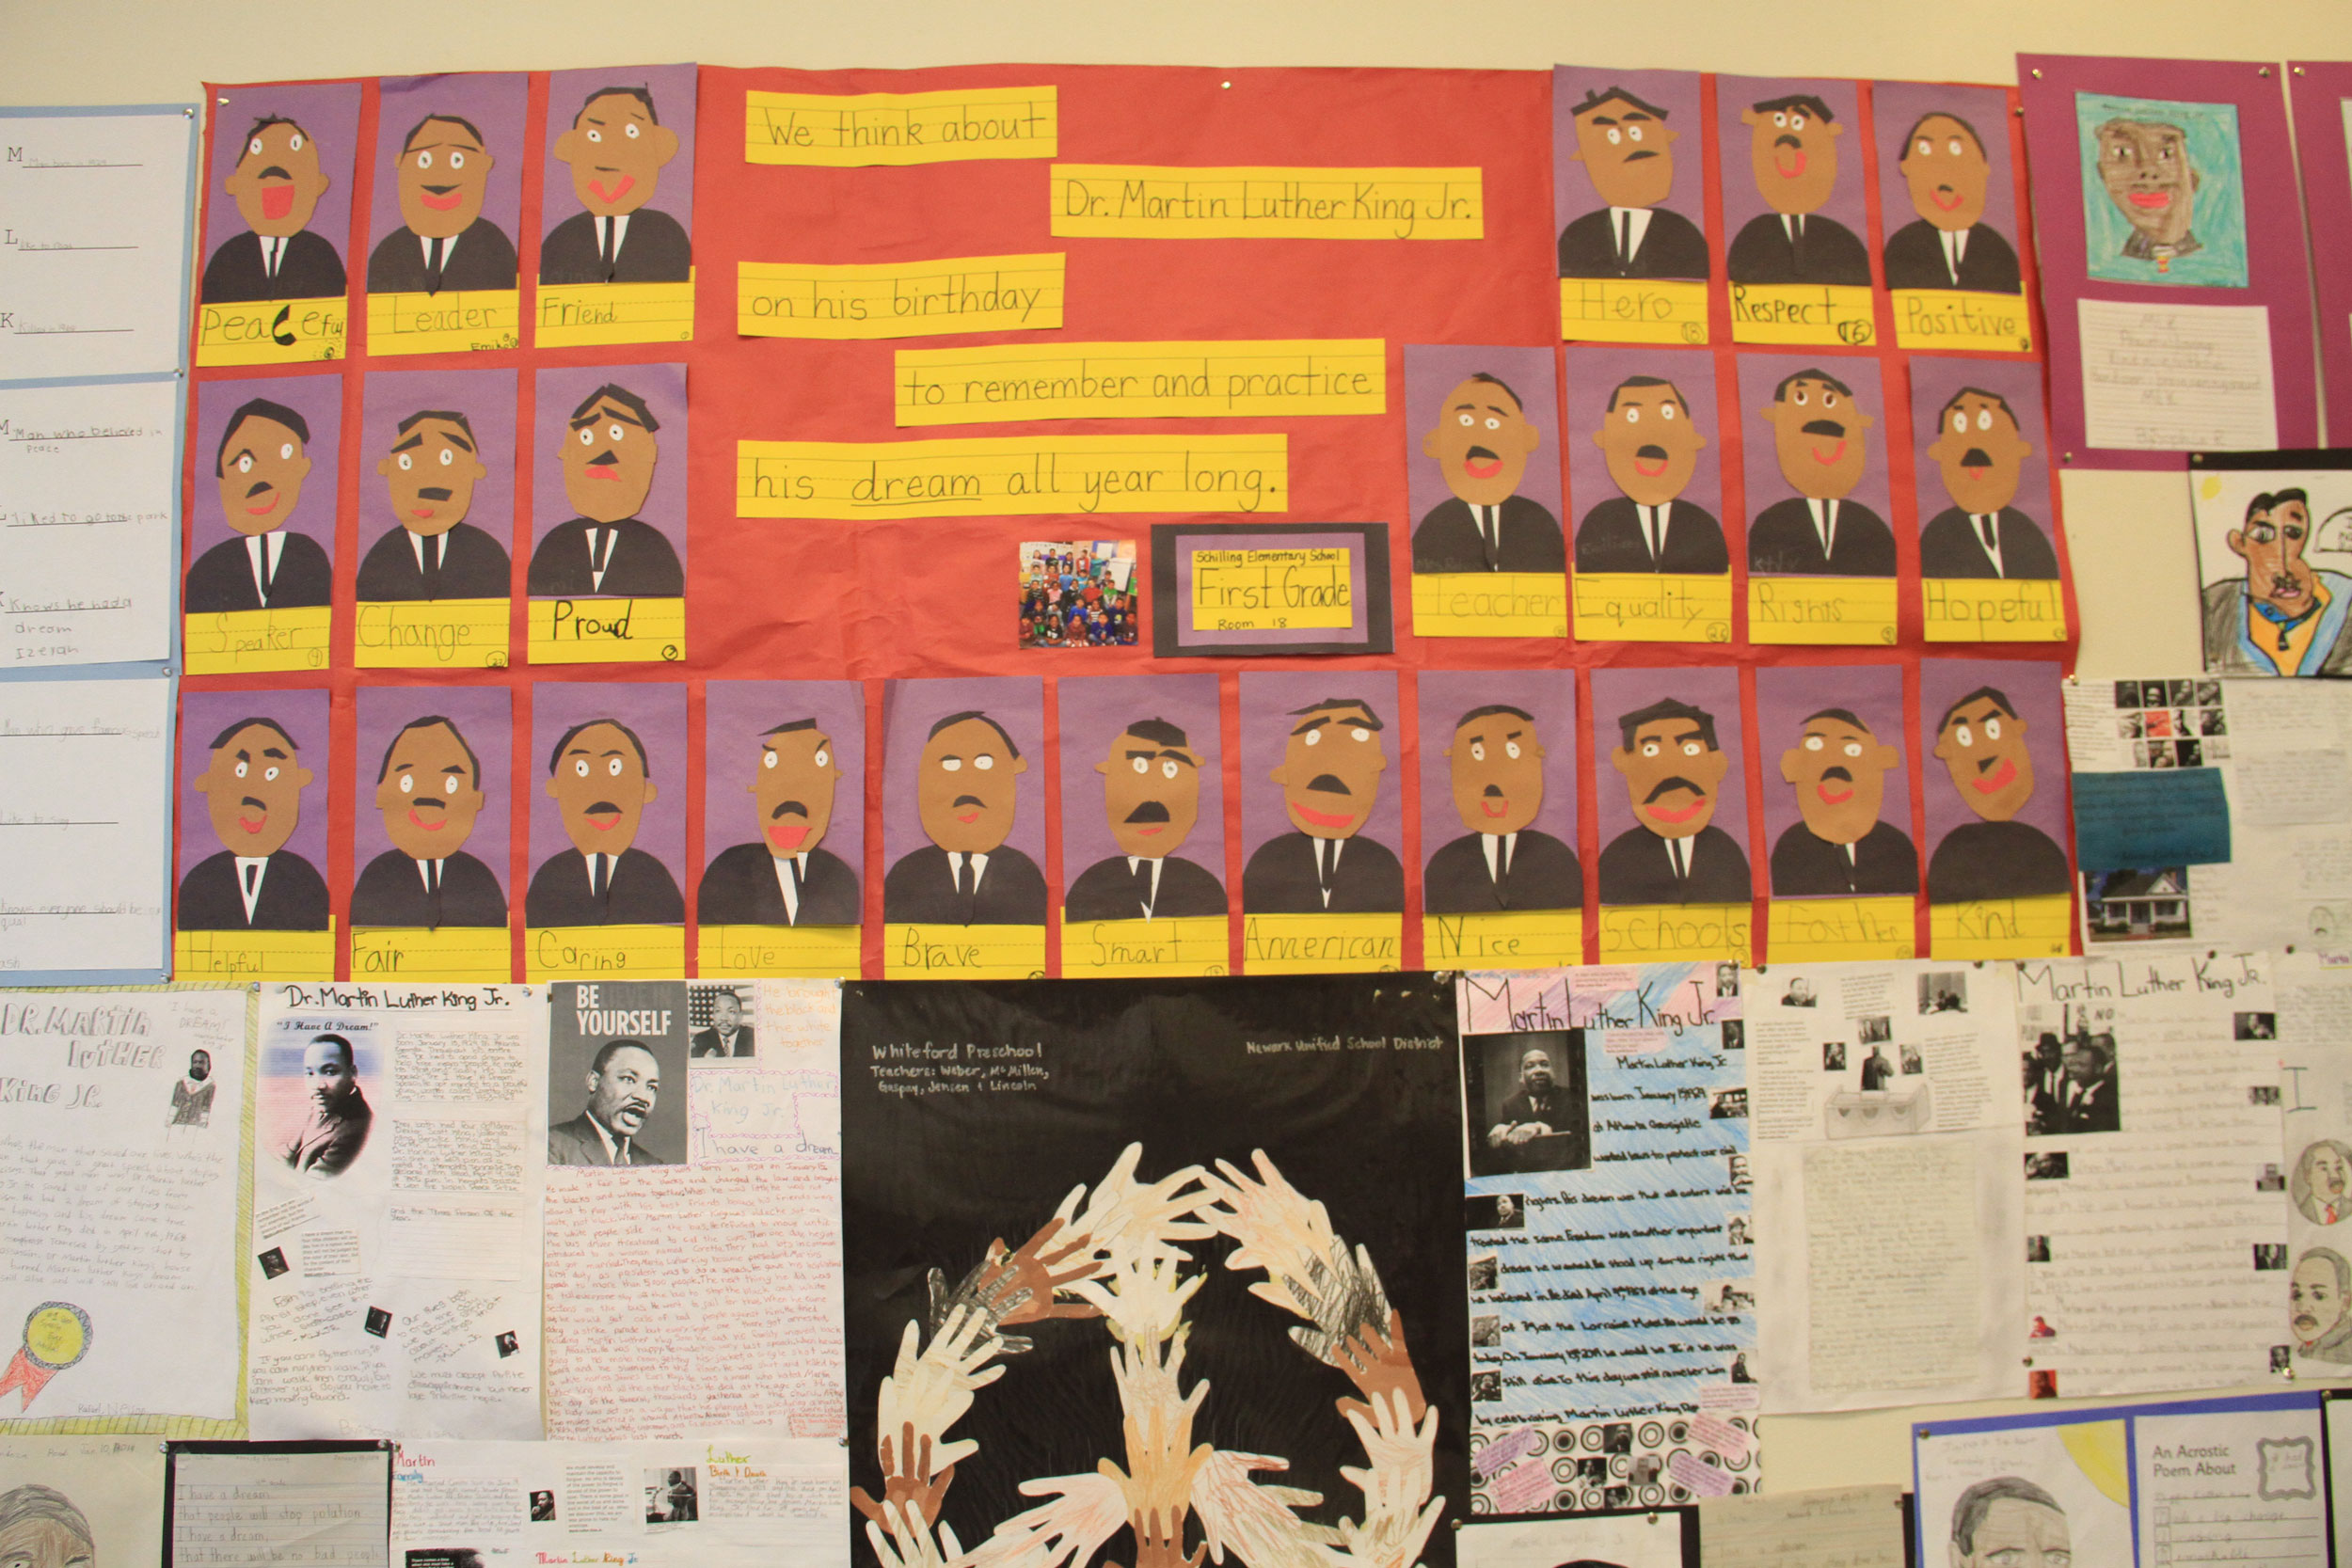 Children's Artwork In Tribute To Dr. Martin Luther King Jr.